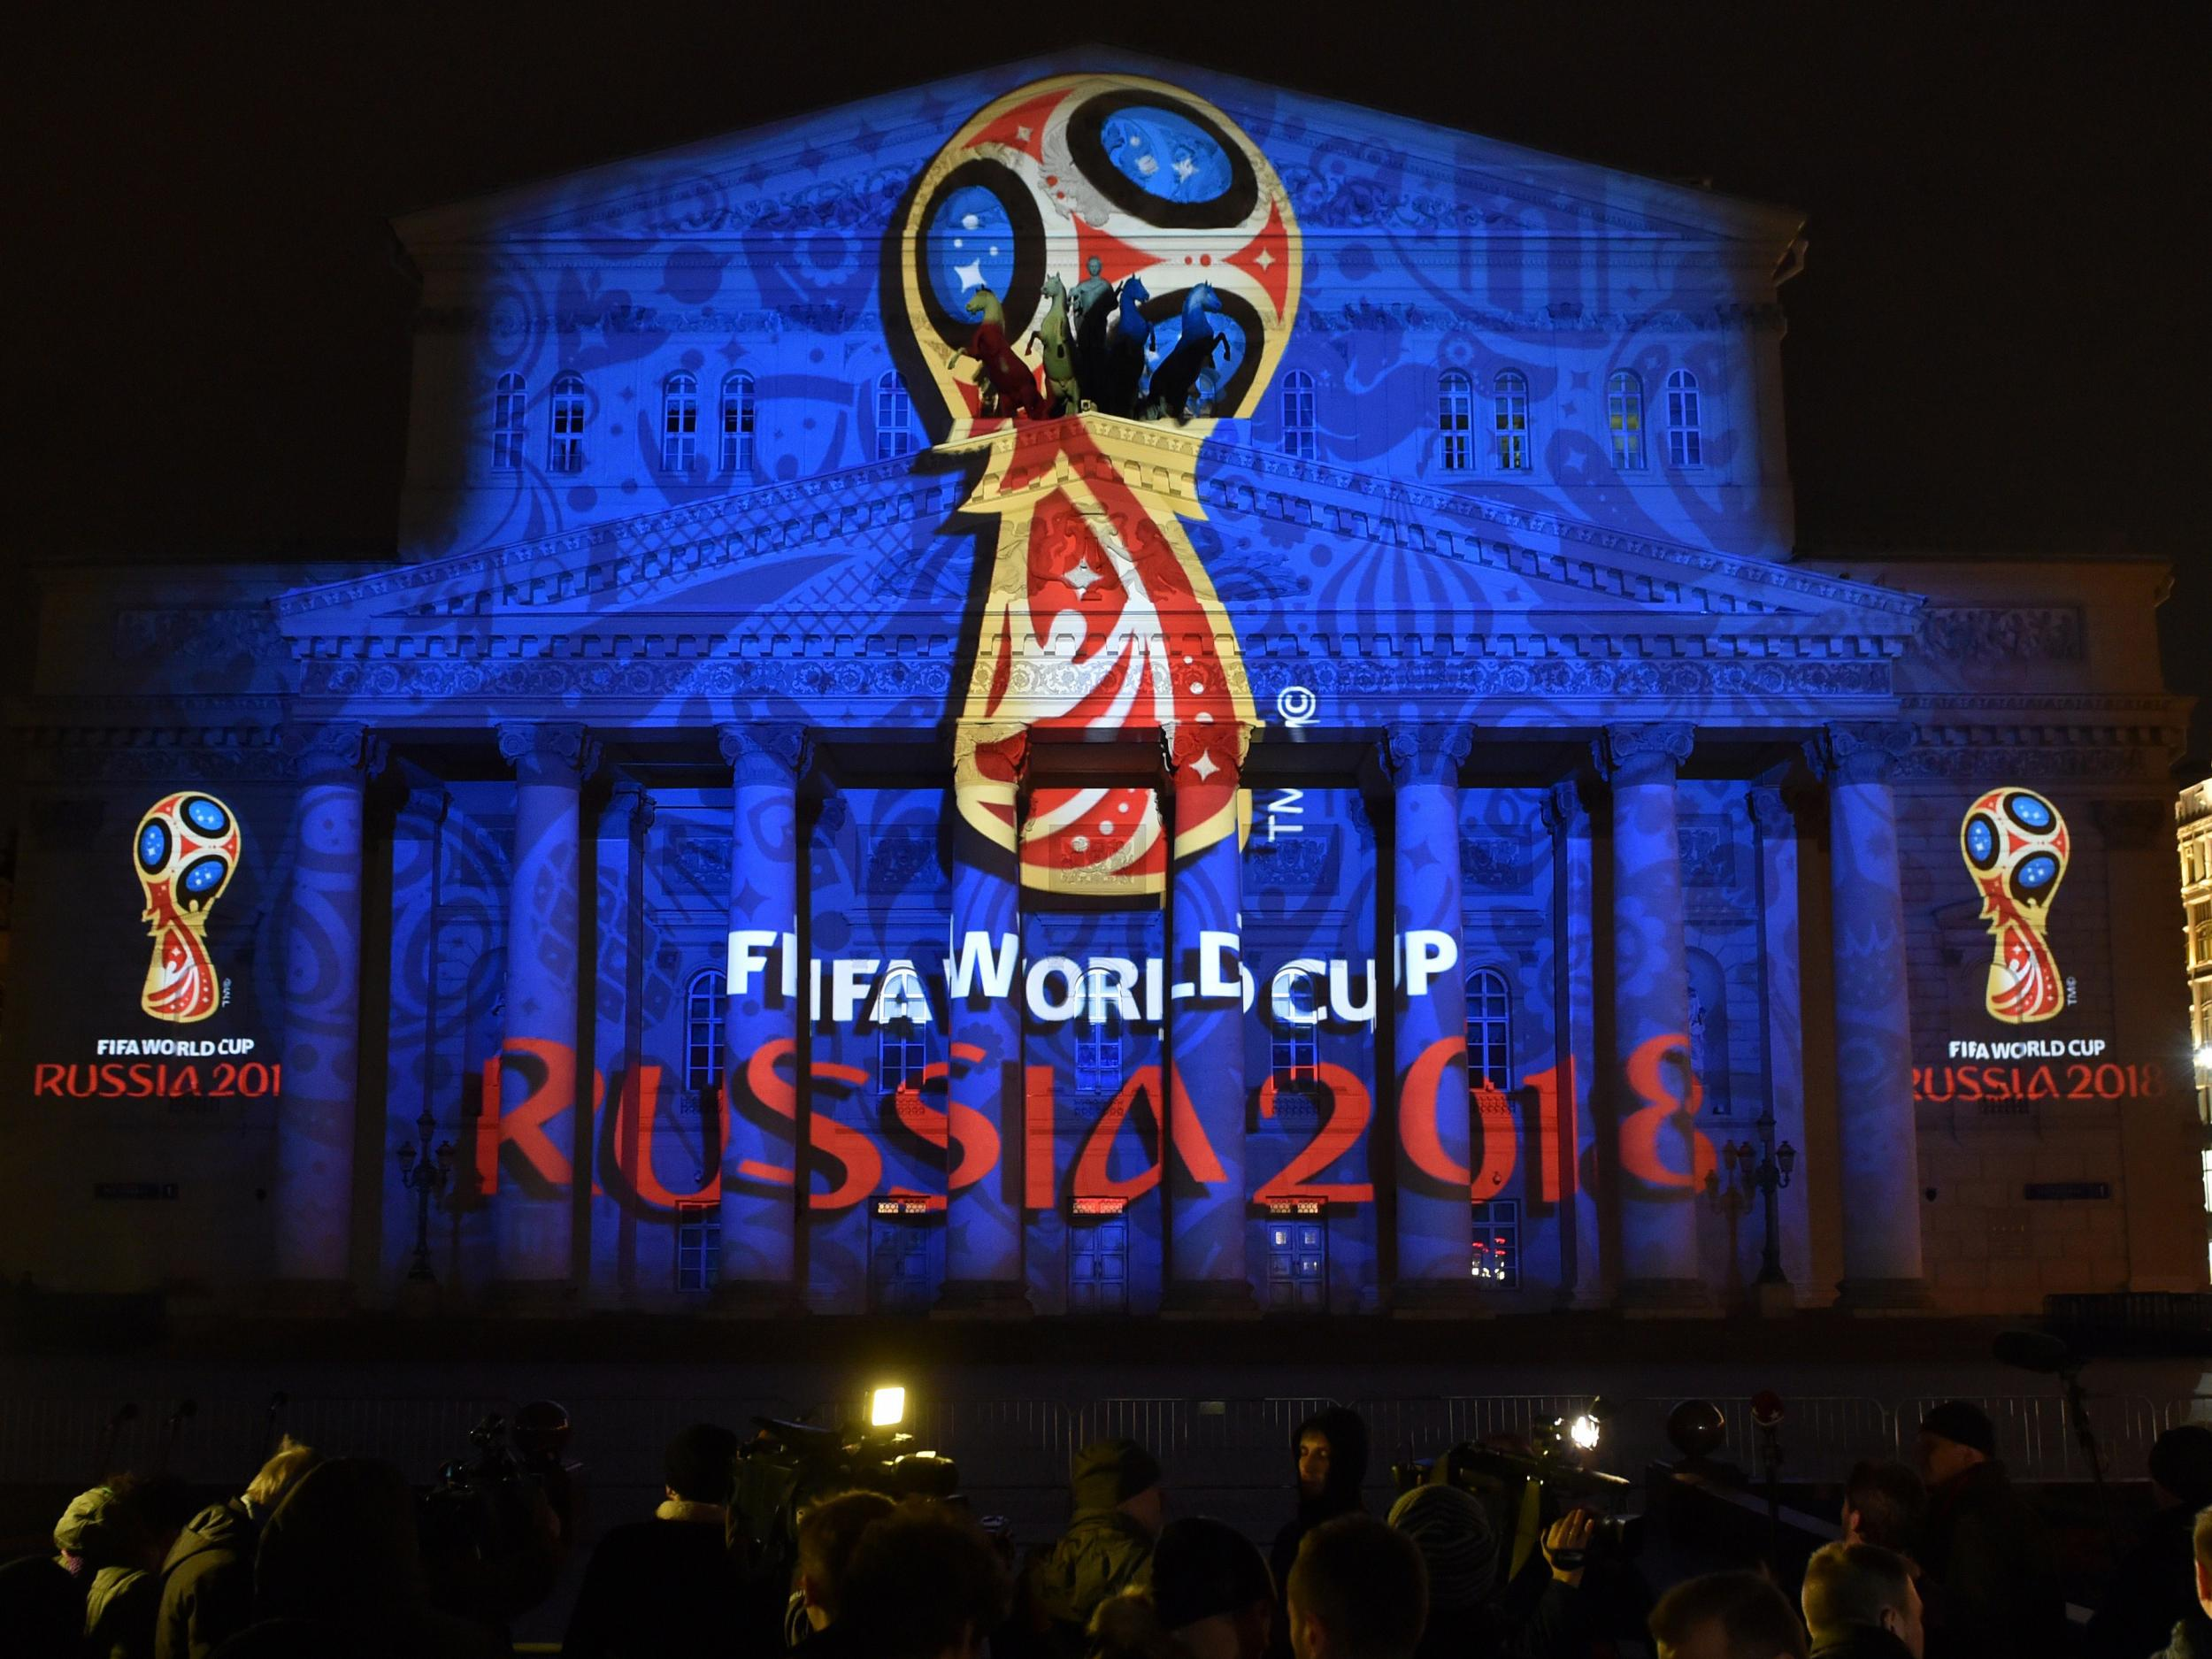 Russian fans at risk of missing own World Cup as TV networks struggle to agree deal with Fifa